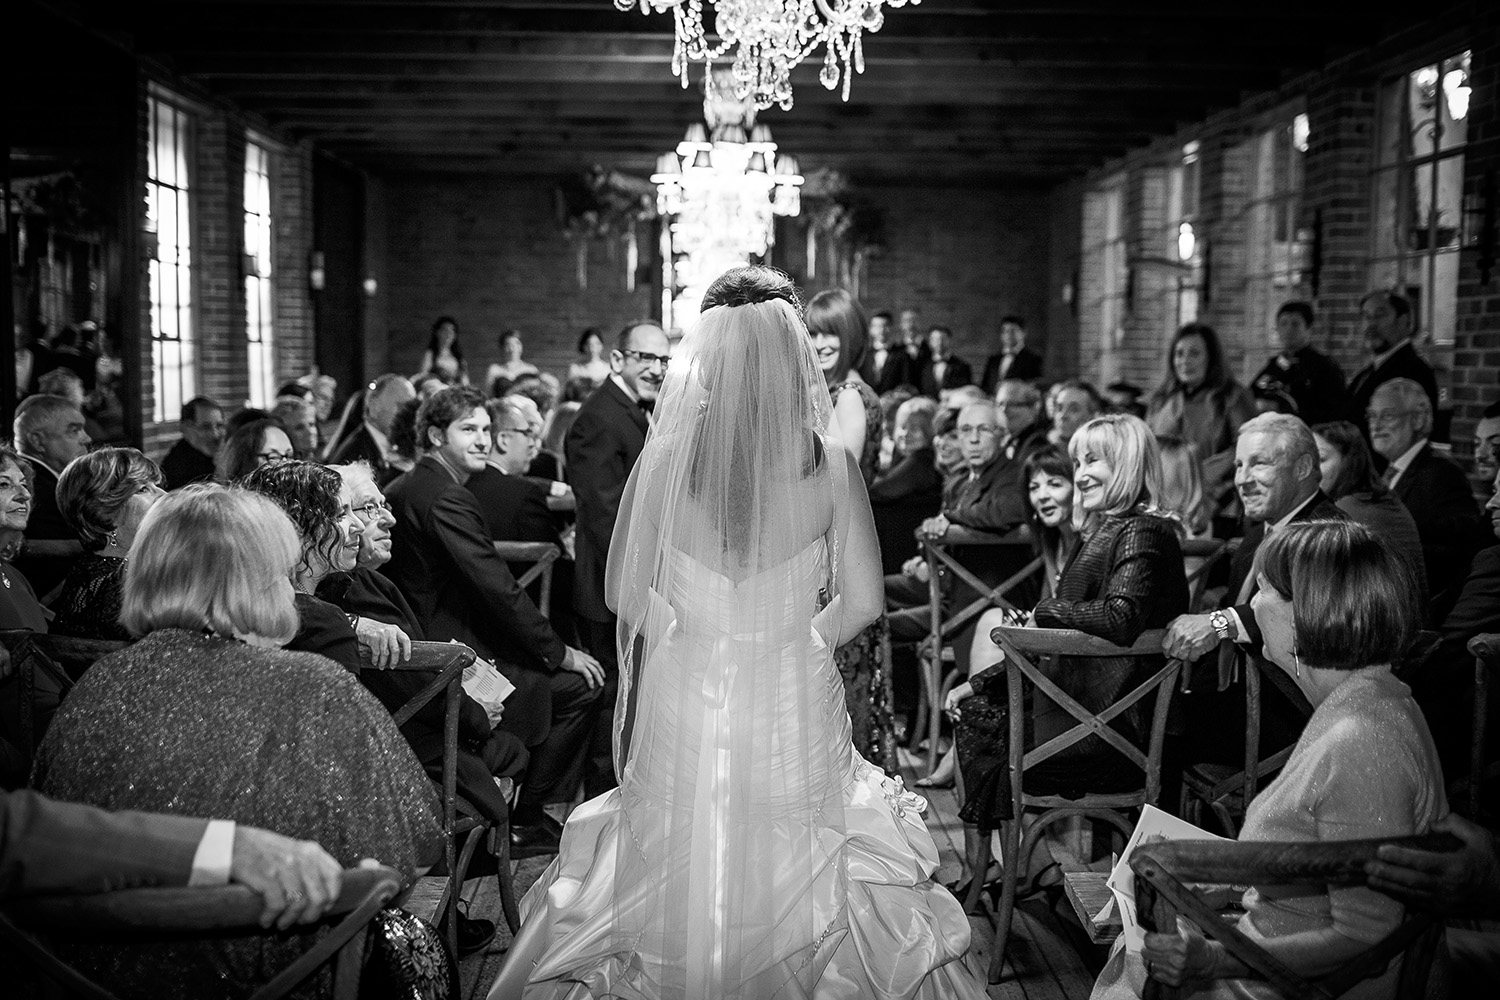 Jewish-Wedding-in-Black-and-White-at-Carondelet-house-in-Los-Angeles